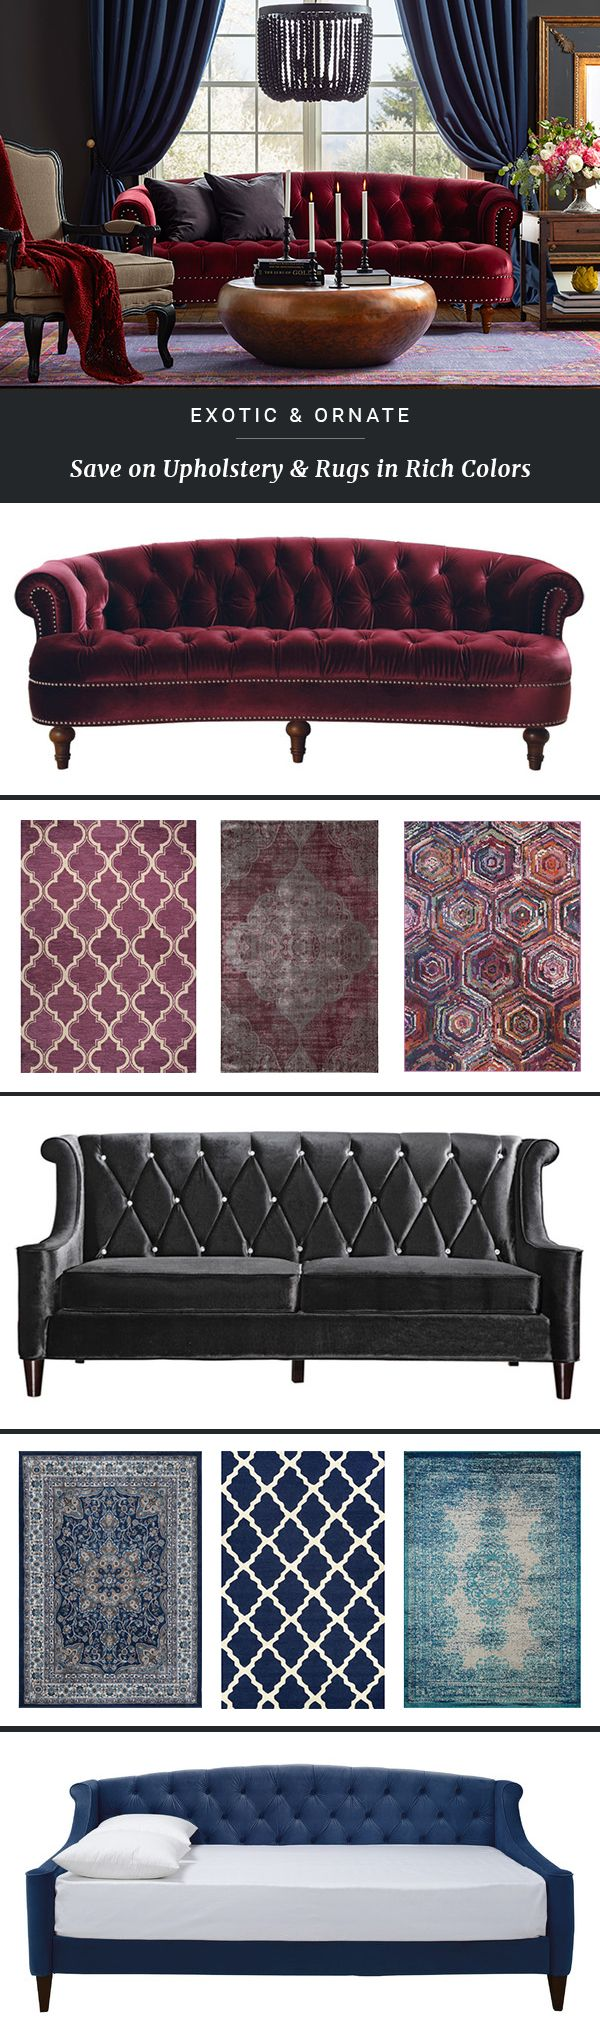 Upholstered furniture is both classic and comfortable—and at Joss & Main, you can buy multiple pieces at an irresistible price. Add a luxe touch with a plush headboard or a velvet sofa, bring fresh energy to classic forms with bold hues and patterns, and more.